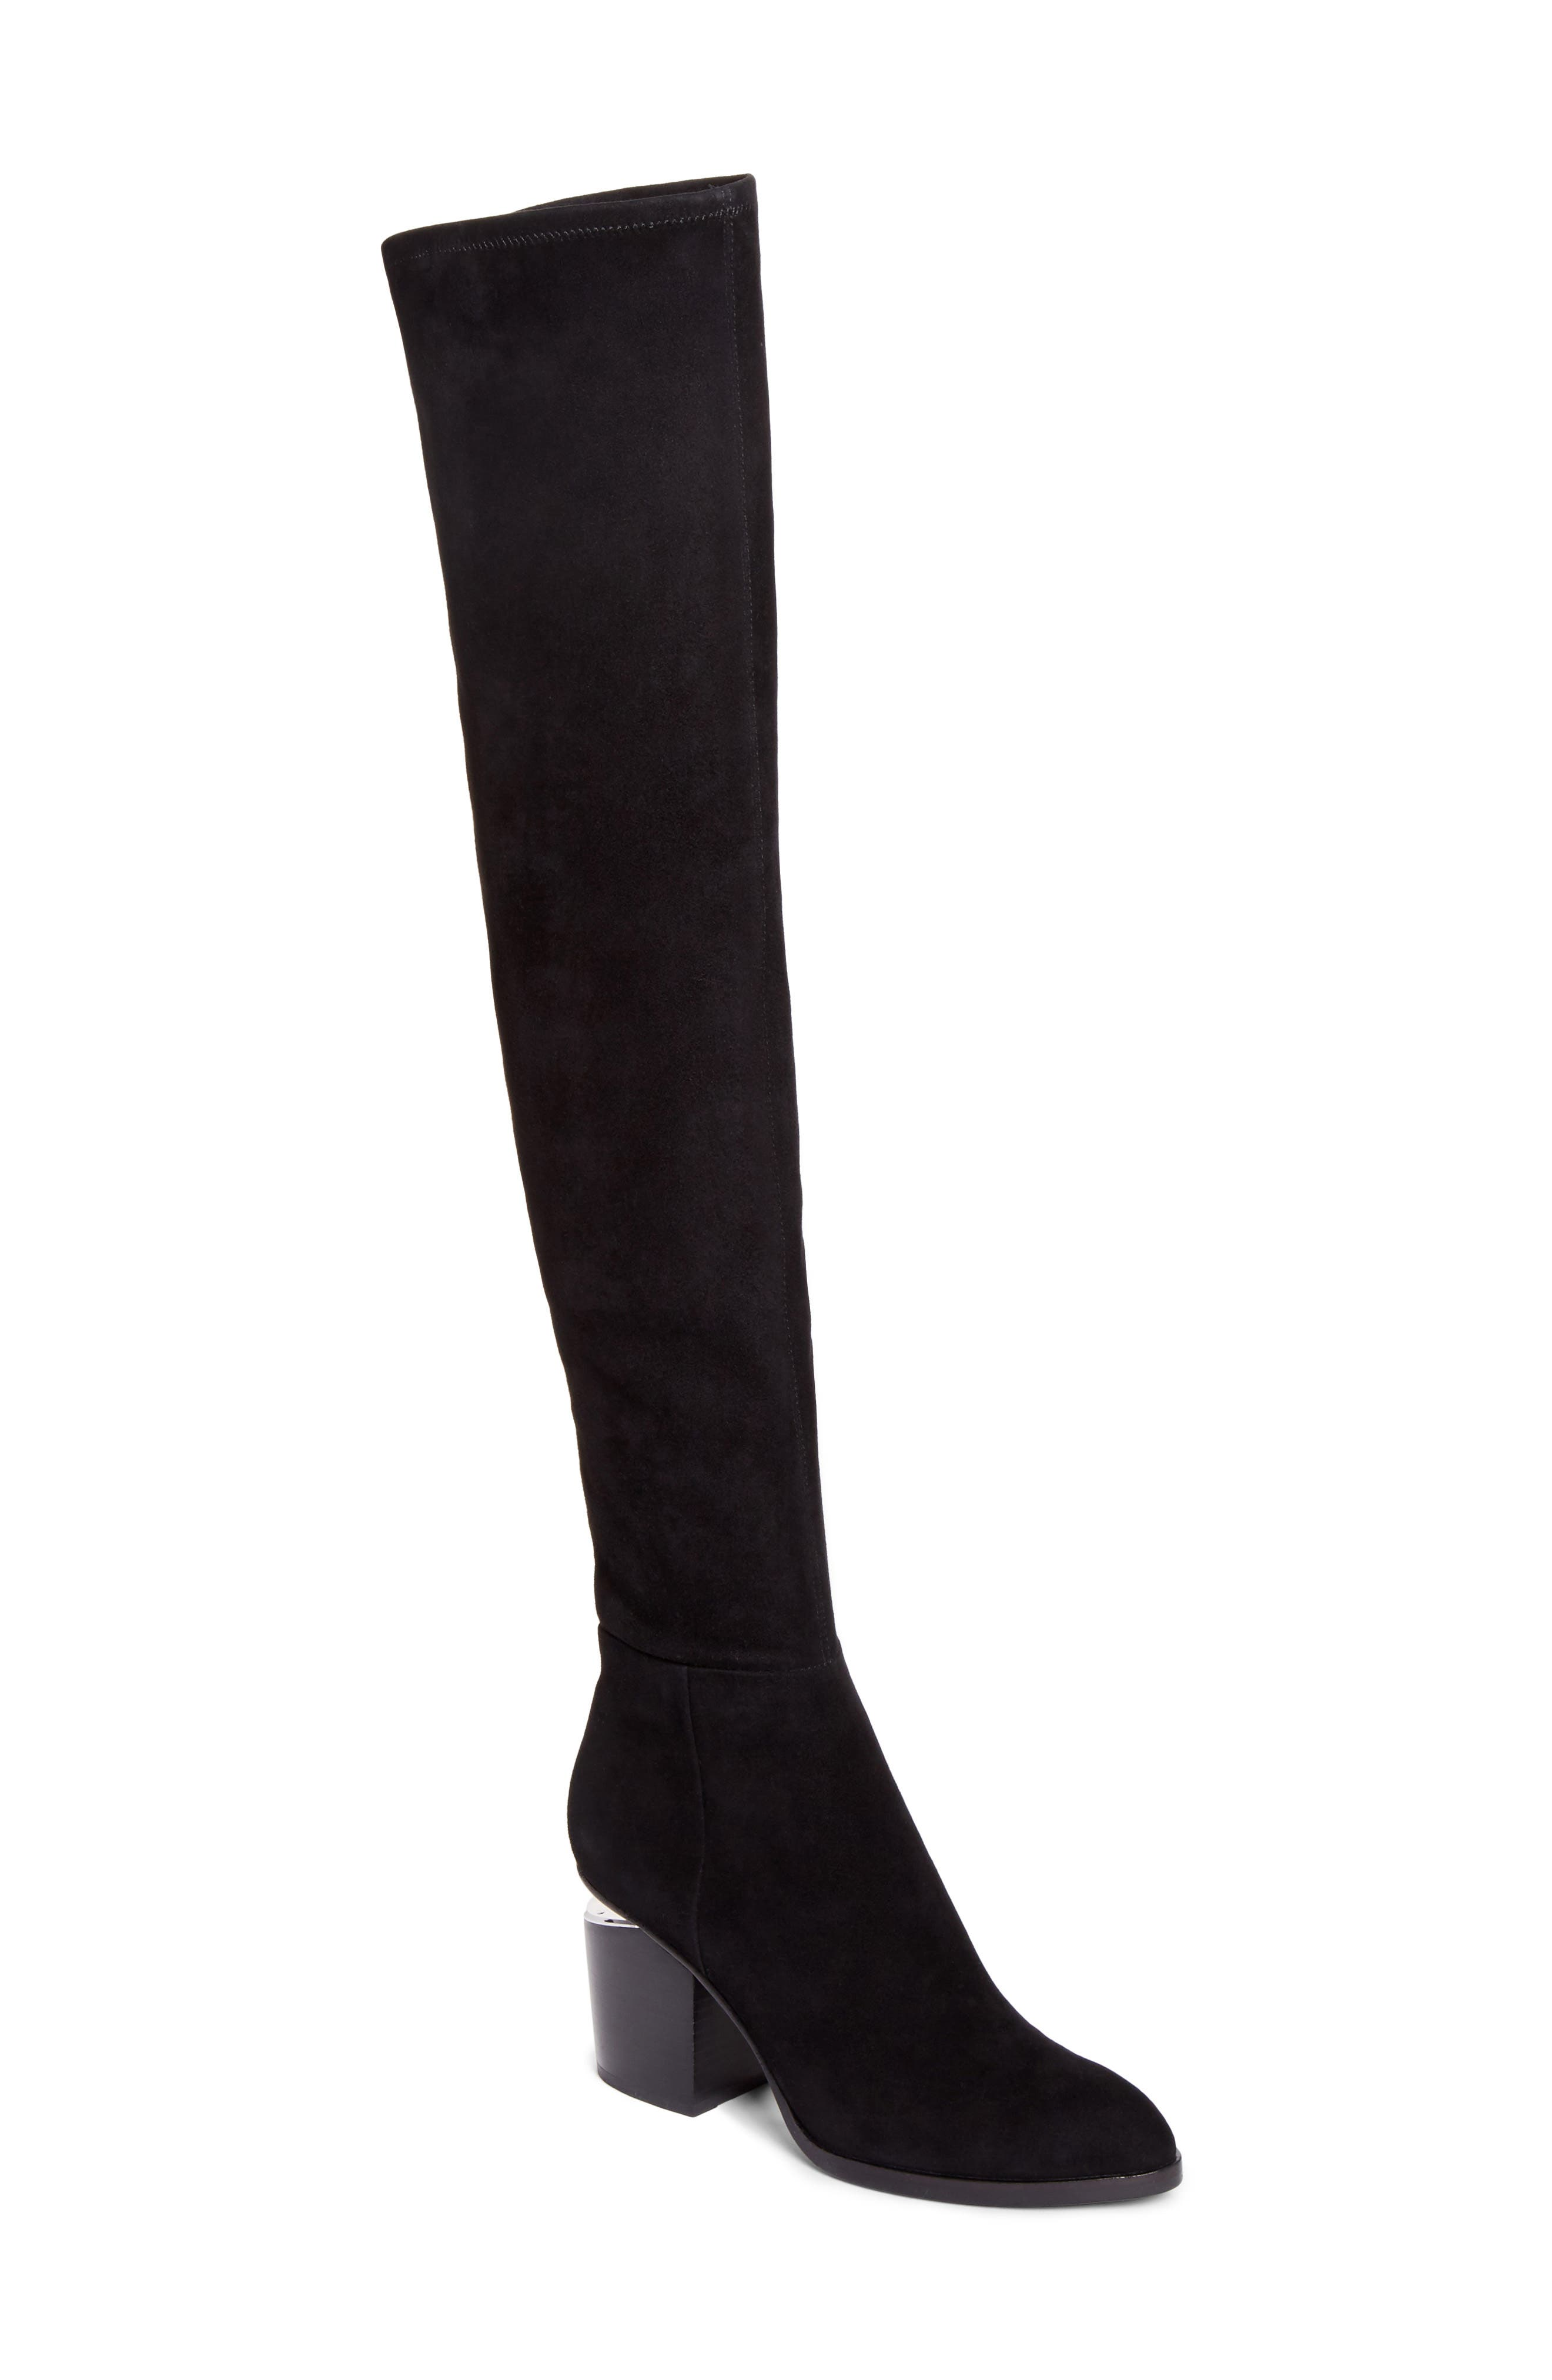 Gabi Over the Knee Boot,                         Main,                         color, Black Suede